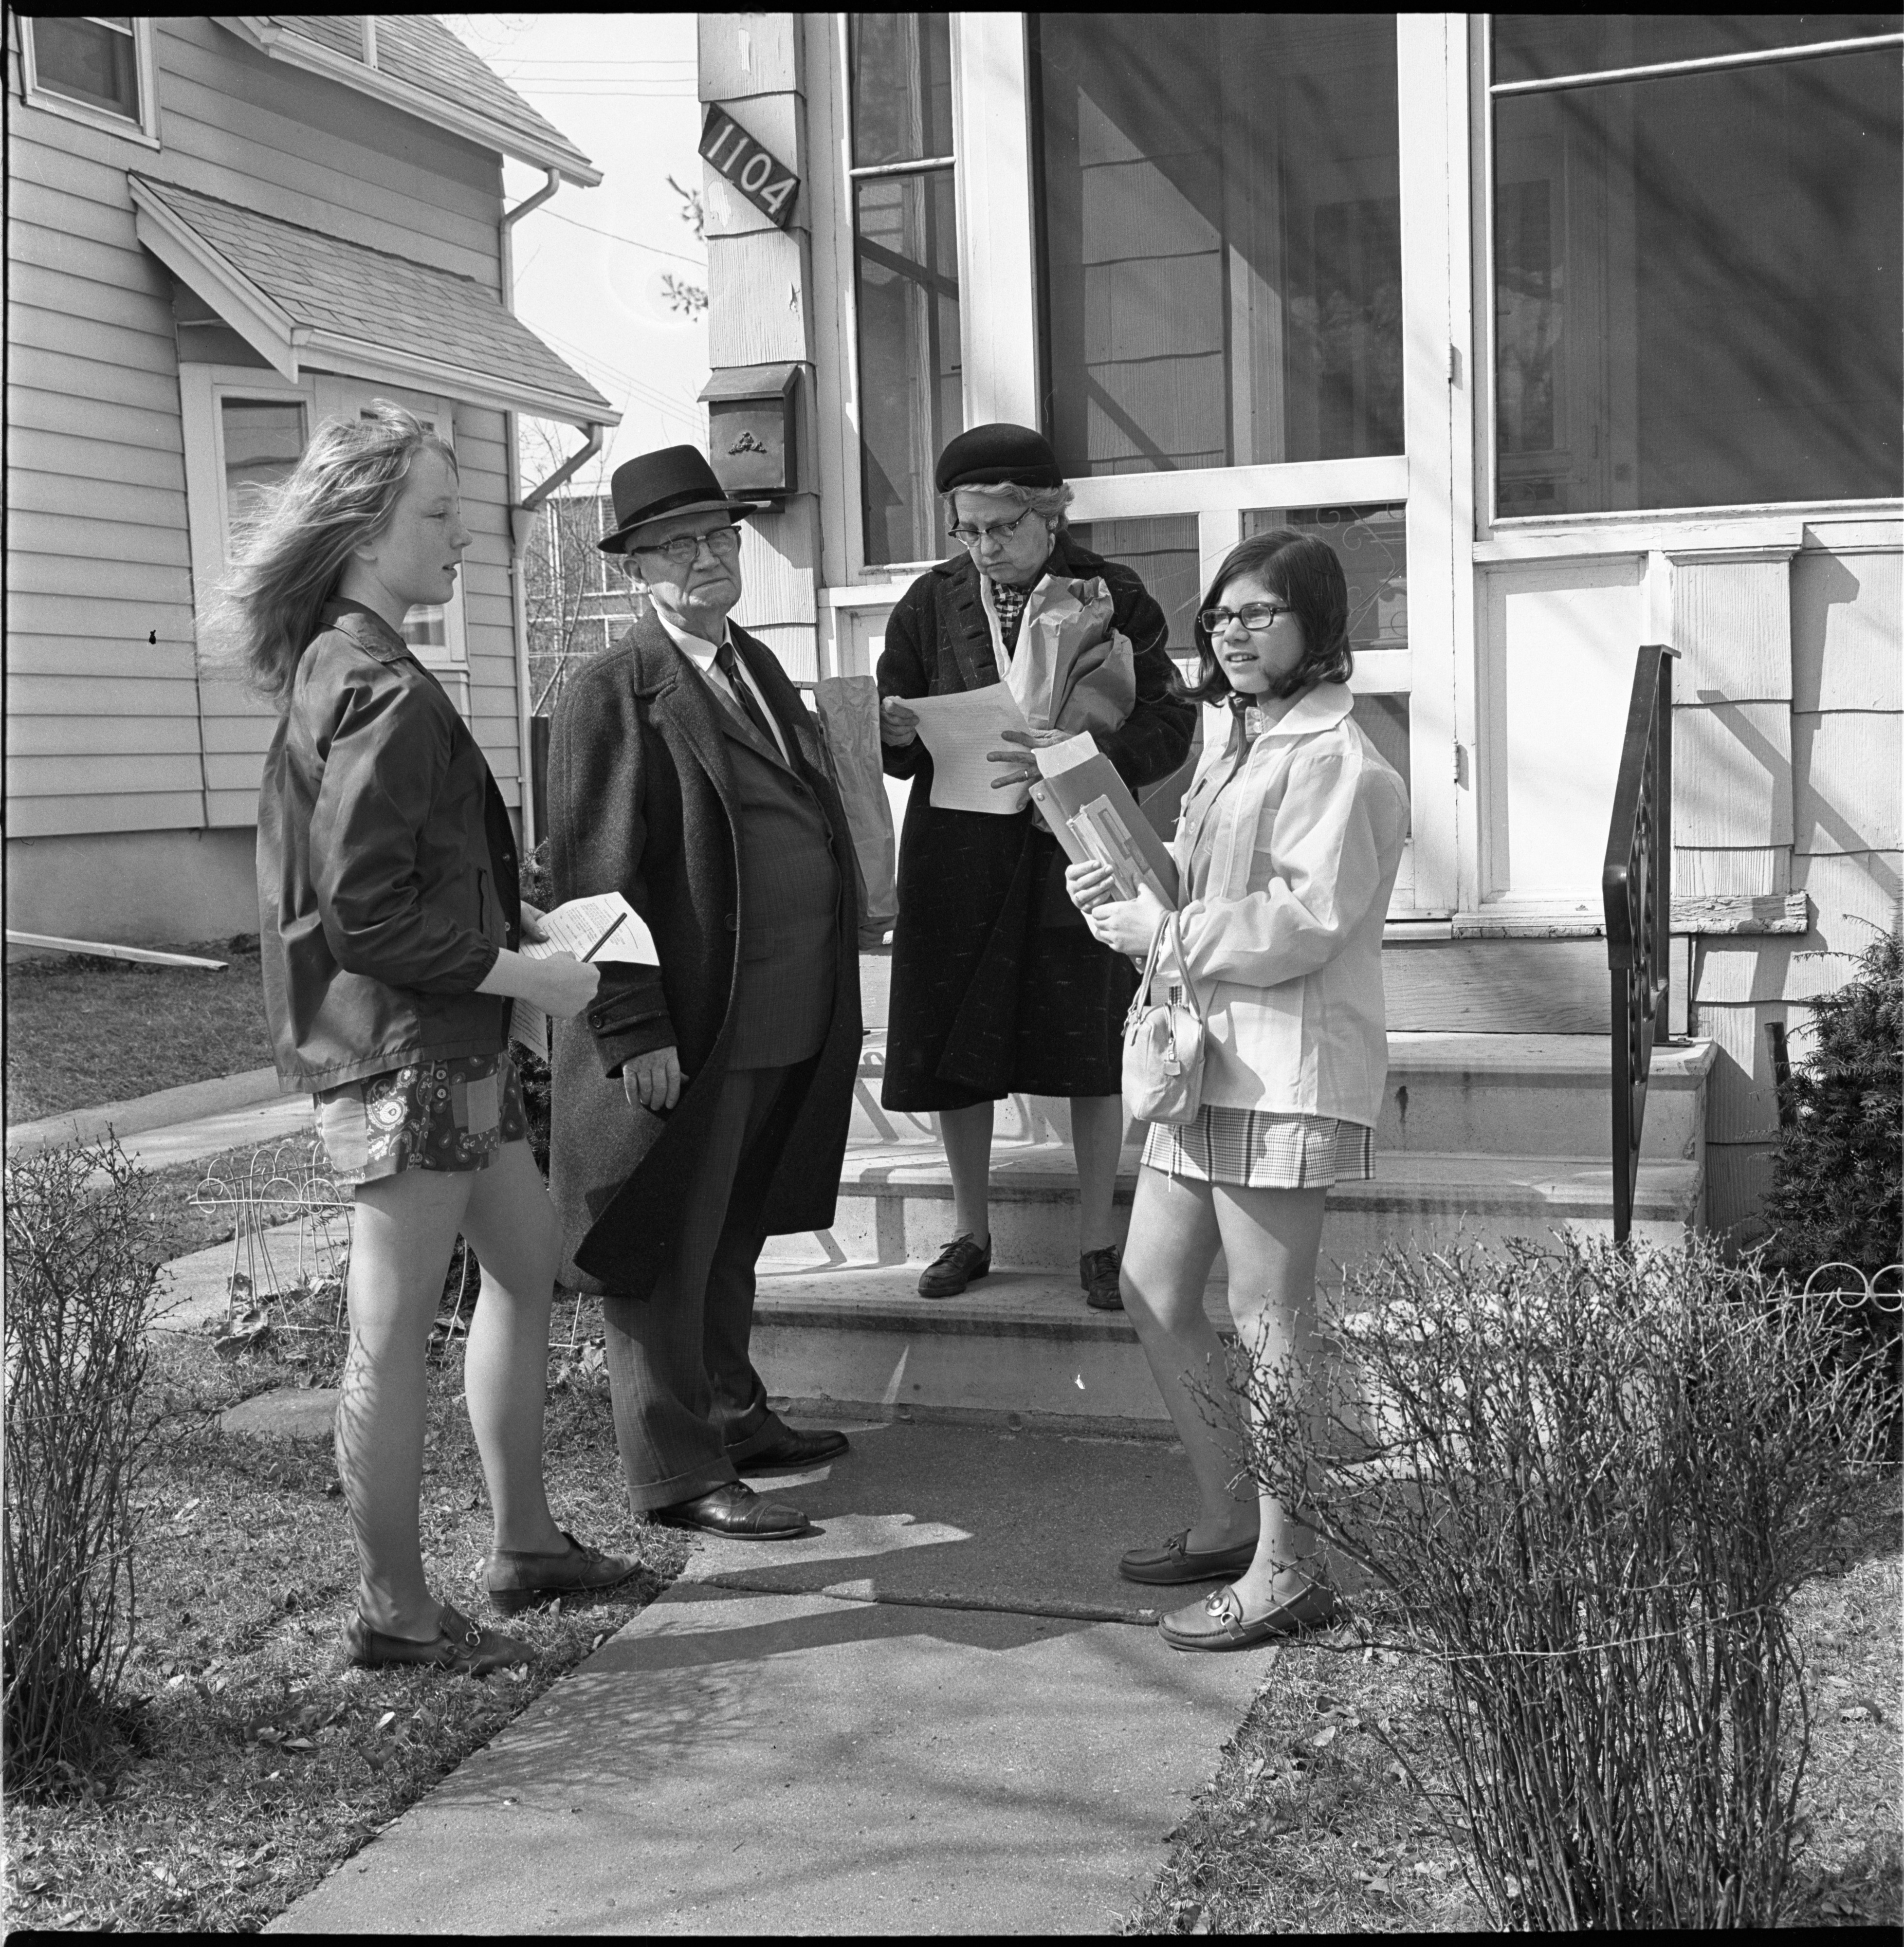 Sybil Johnson & Nanci Gerler Collect Signatures For A League Of Women Voters Petition, April 1970 image